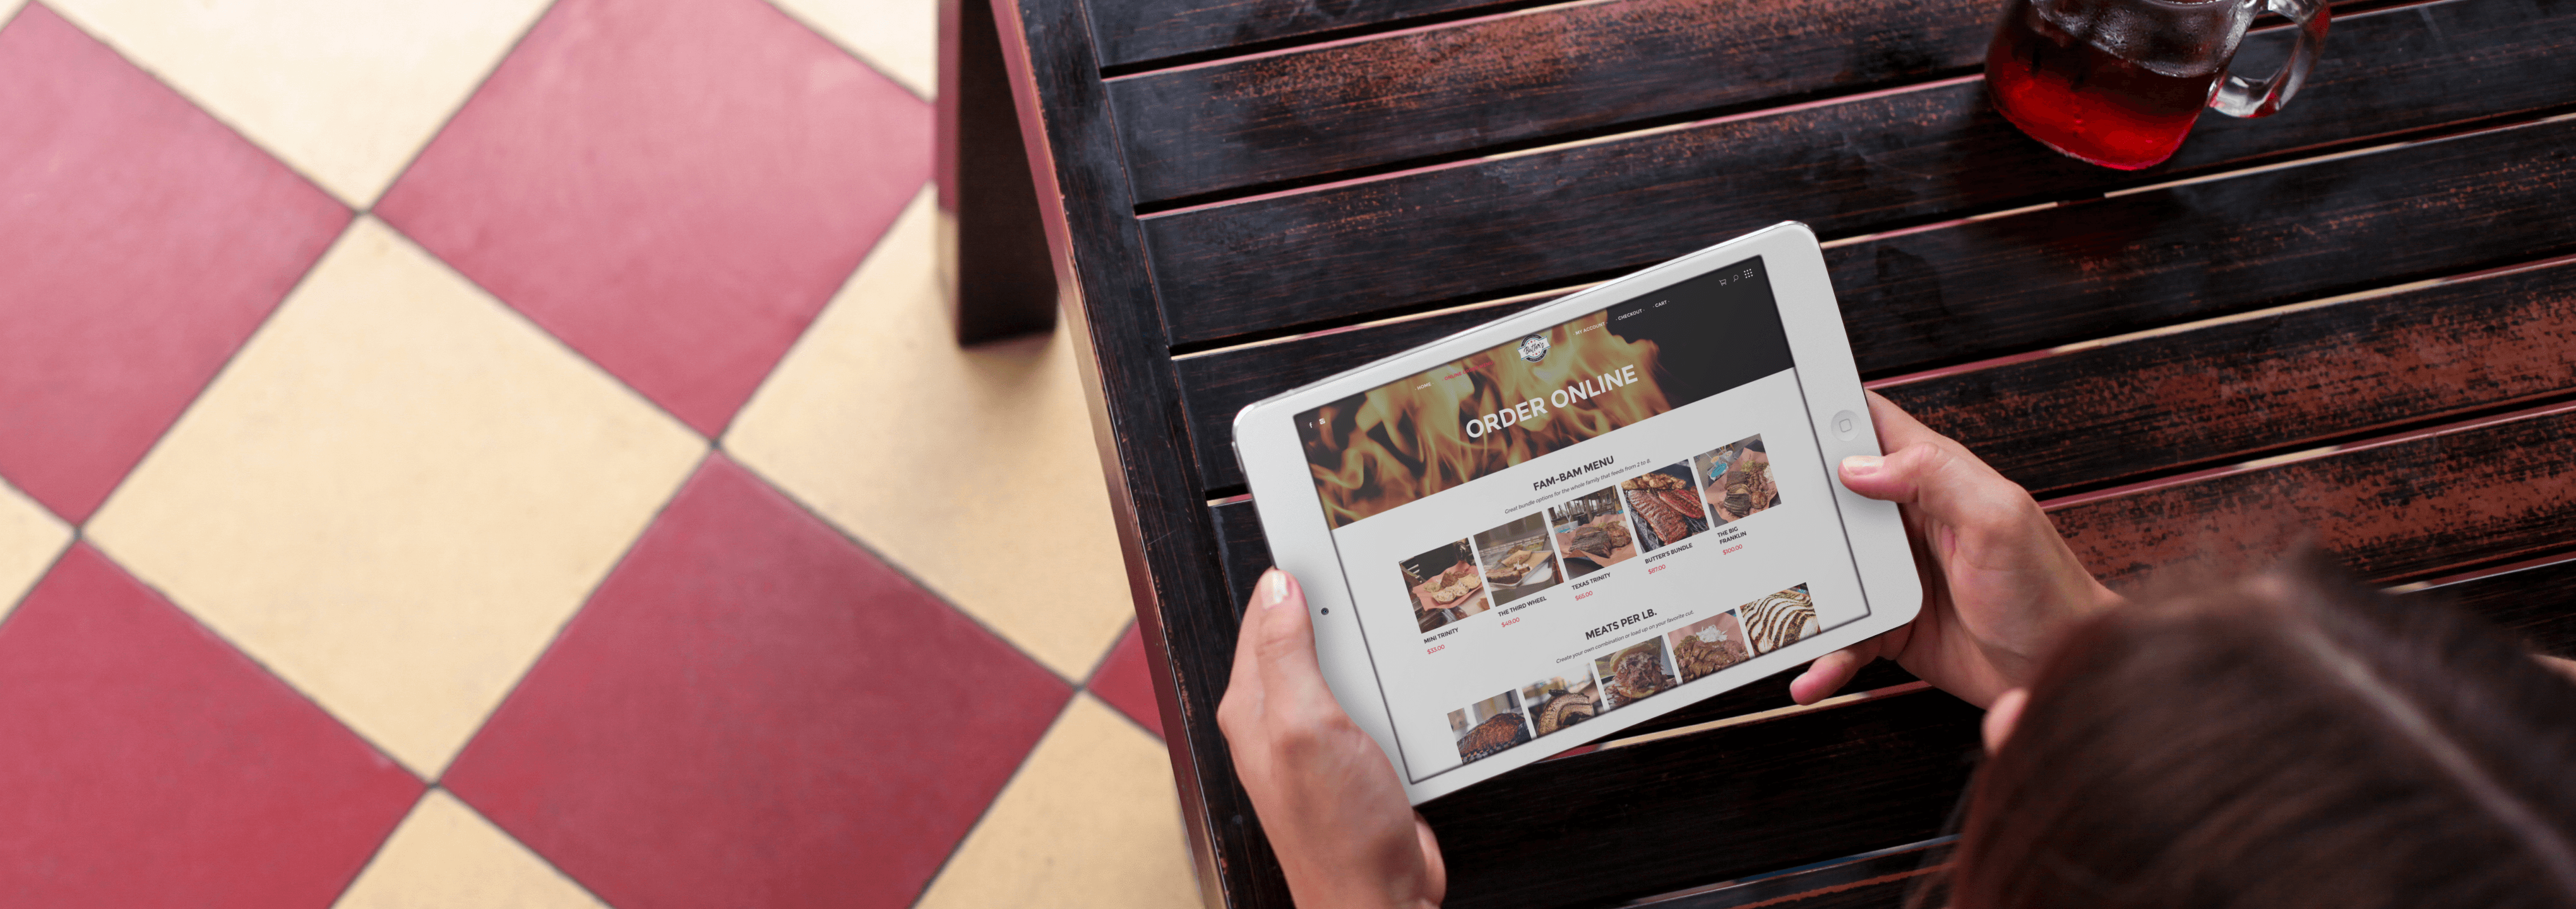 tablet mockup of a woman using an ipad mini at a restaurant - Butter's Barbecue